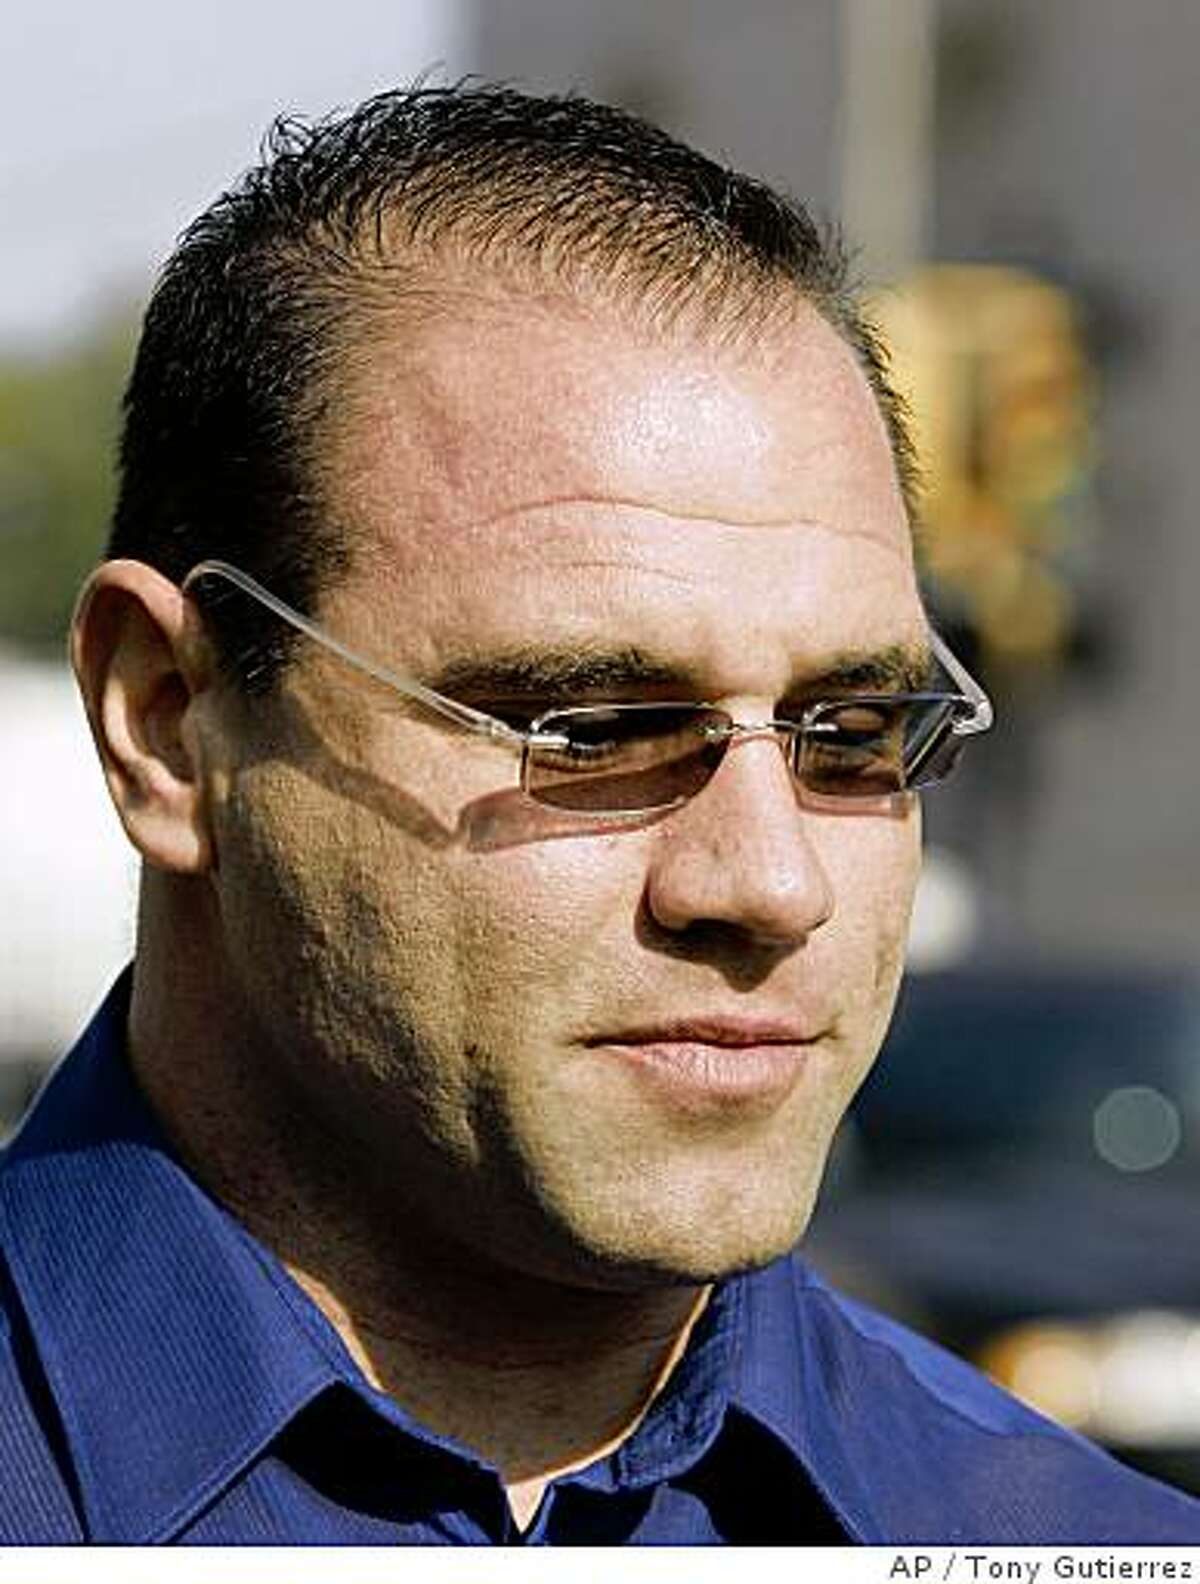 In this Nov. 13, 2007 file photo, David Jacobs of Plano, Texas, walks out of the federal courthouse in Sherman, Texas, after pleading guilty to federal charges of to conspiring to distribute thousands of units of anabolic steroids.